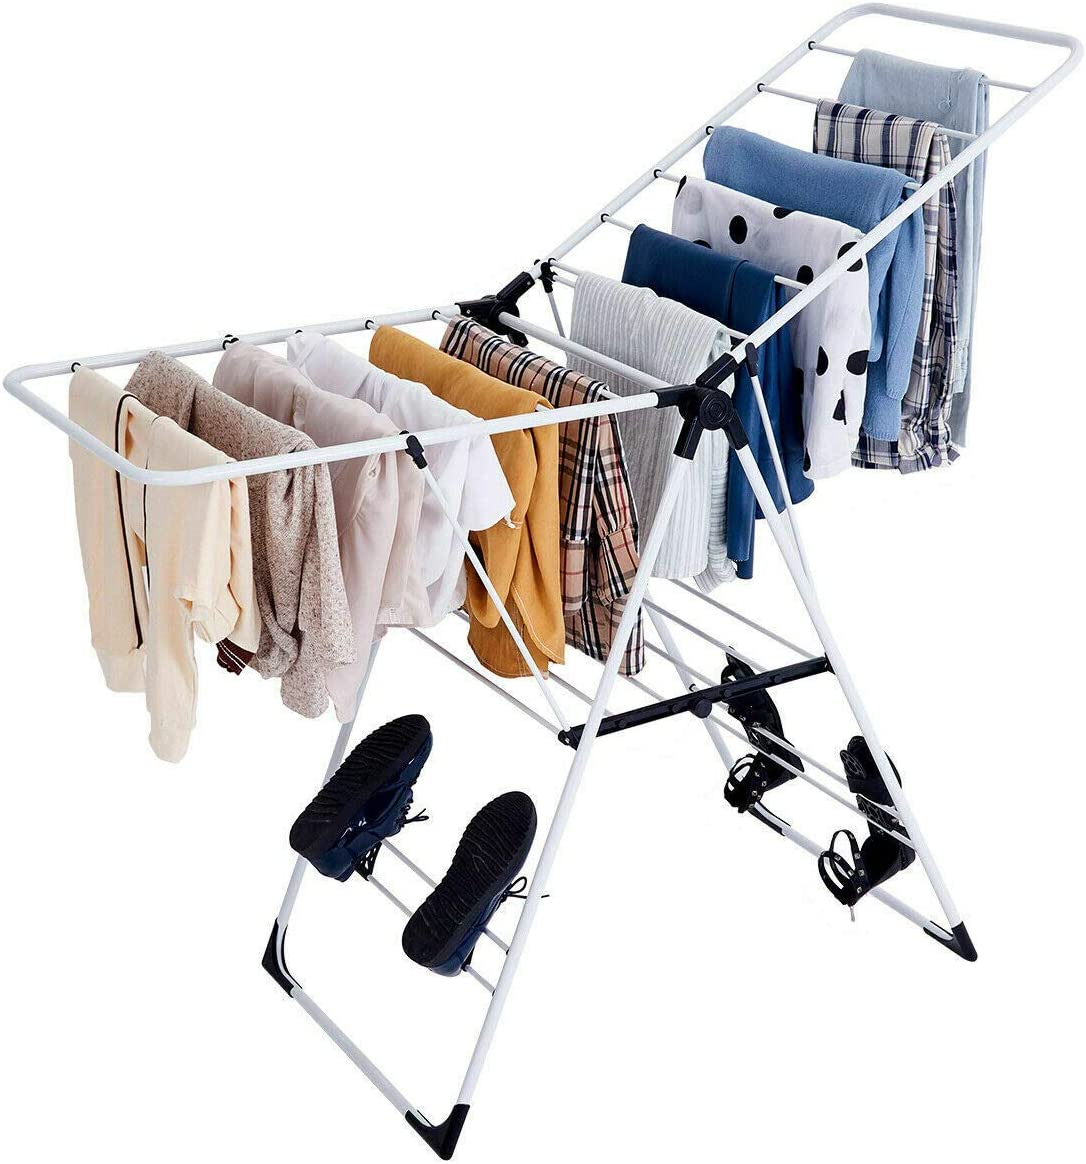 108siam Laundry Clothes Storage Drying Rack Portable Folding Dryer Hanger Heavy Duty New 71oa54vQY-LSL1200_